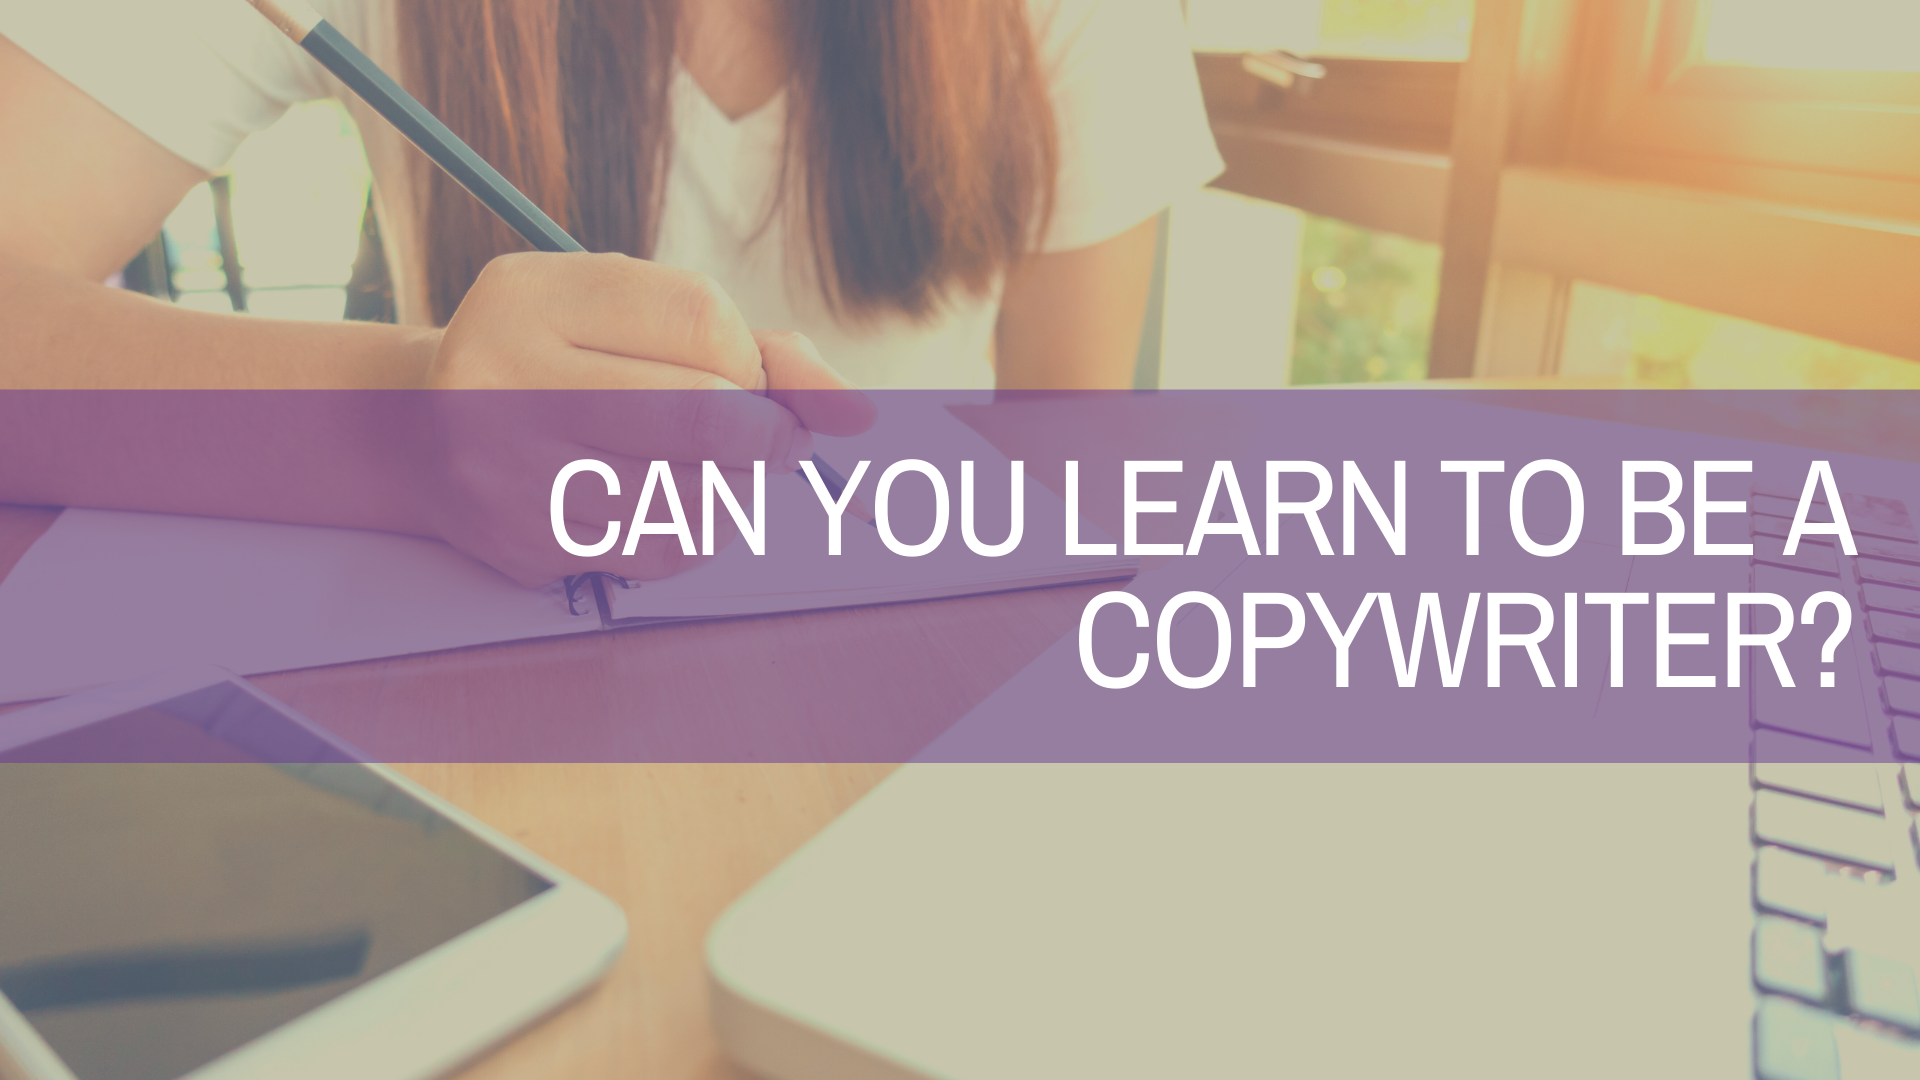 Can You Learn to Be a Copywriter?